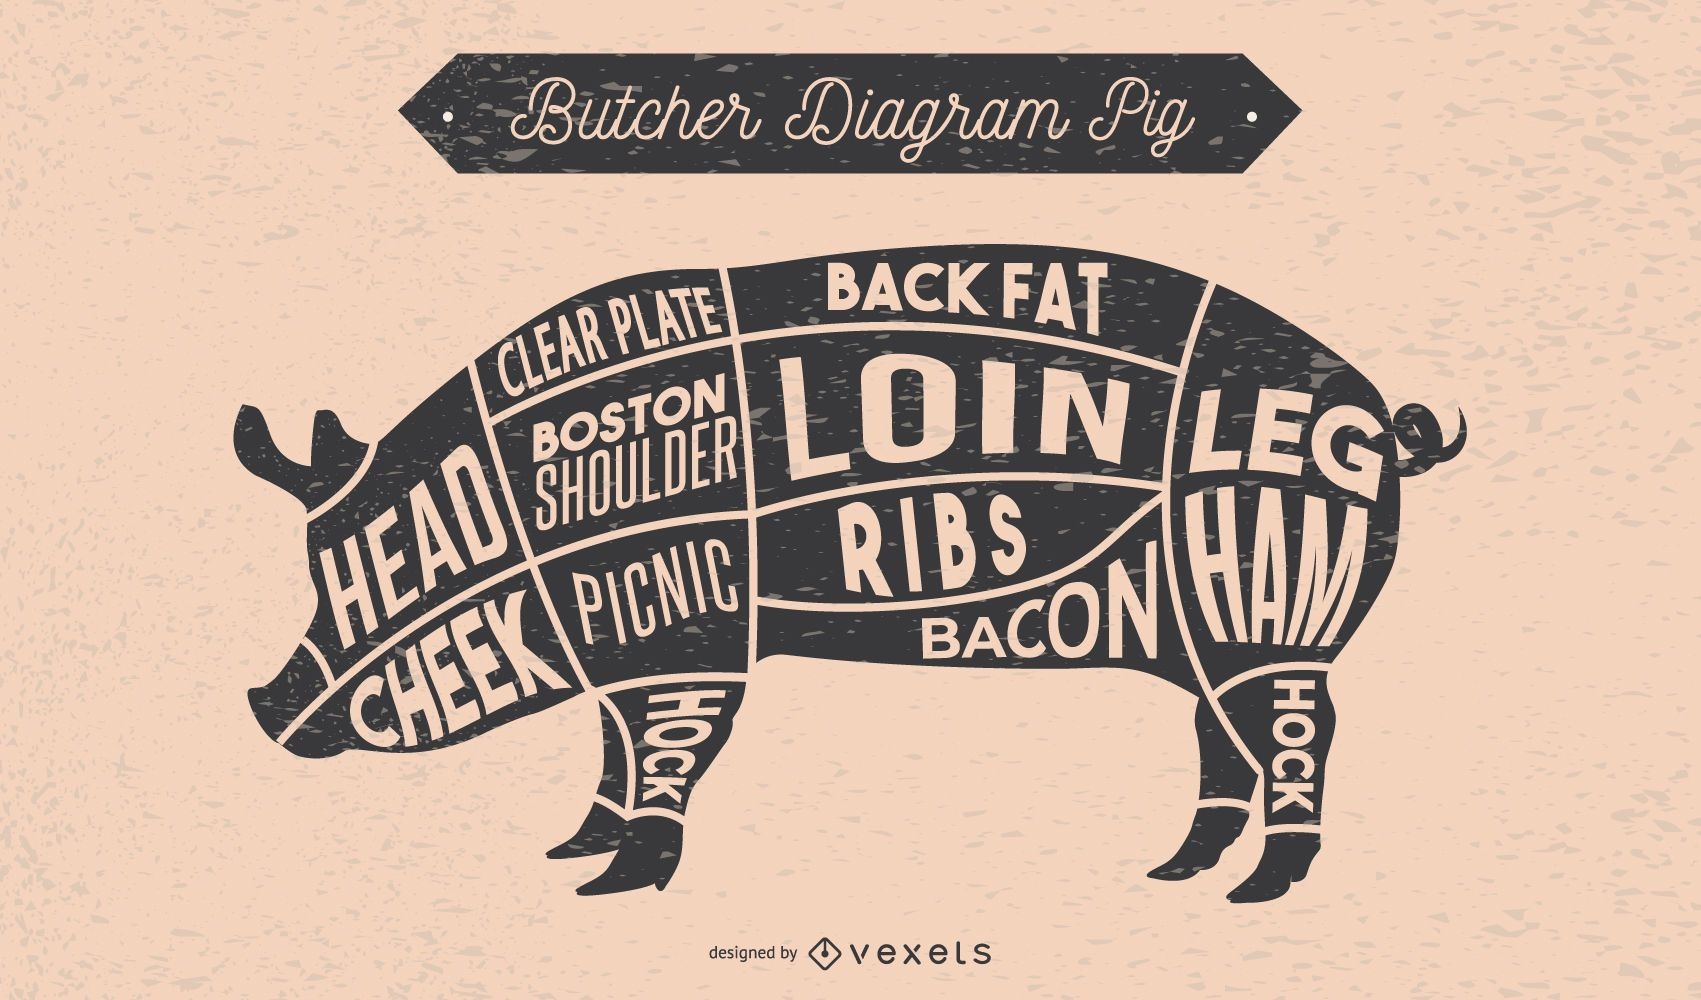 hight resolution of pig butcher diagram illustration download large image 1701x1000px